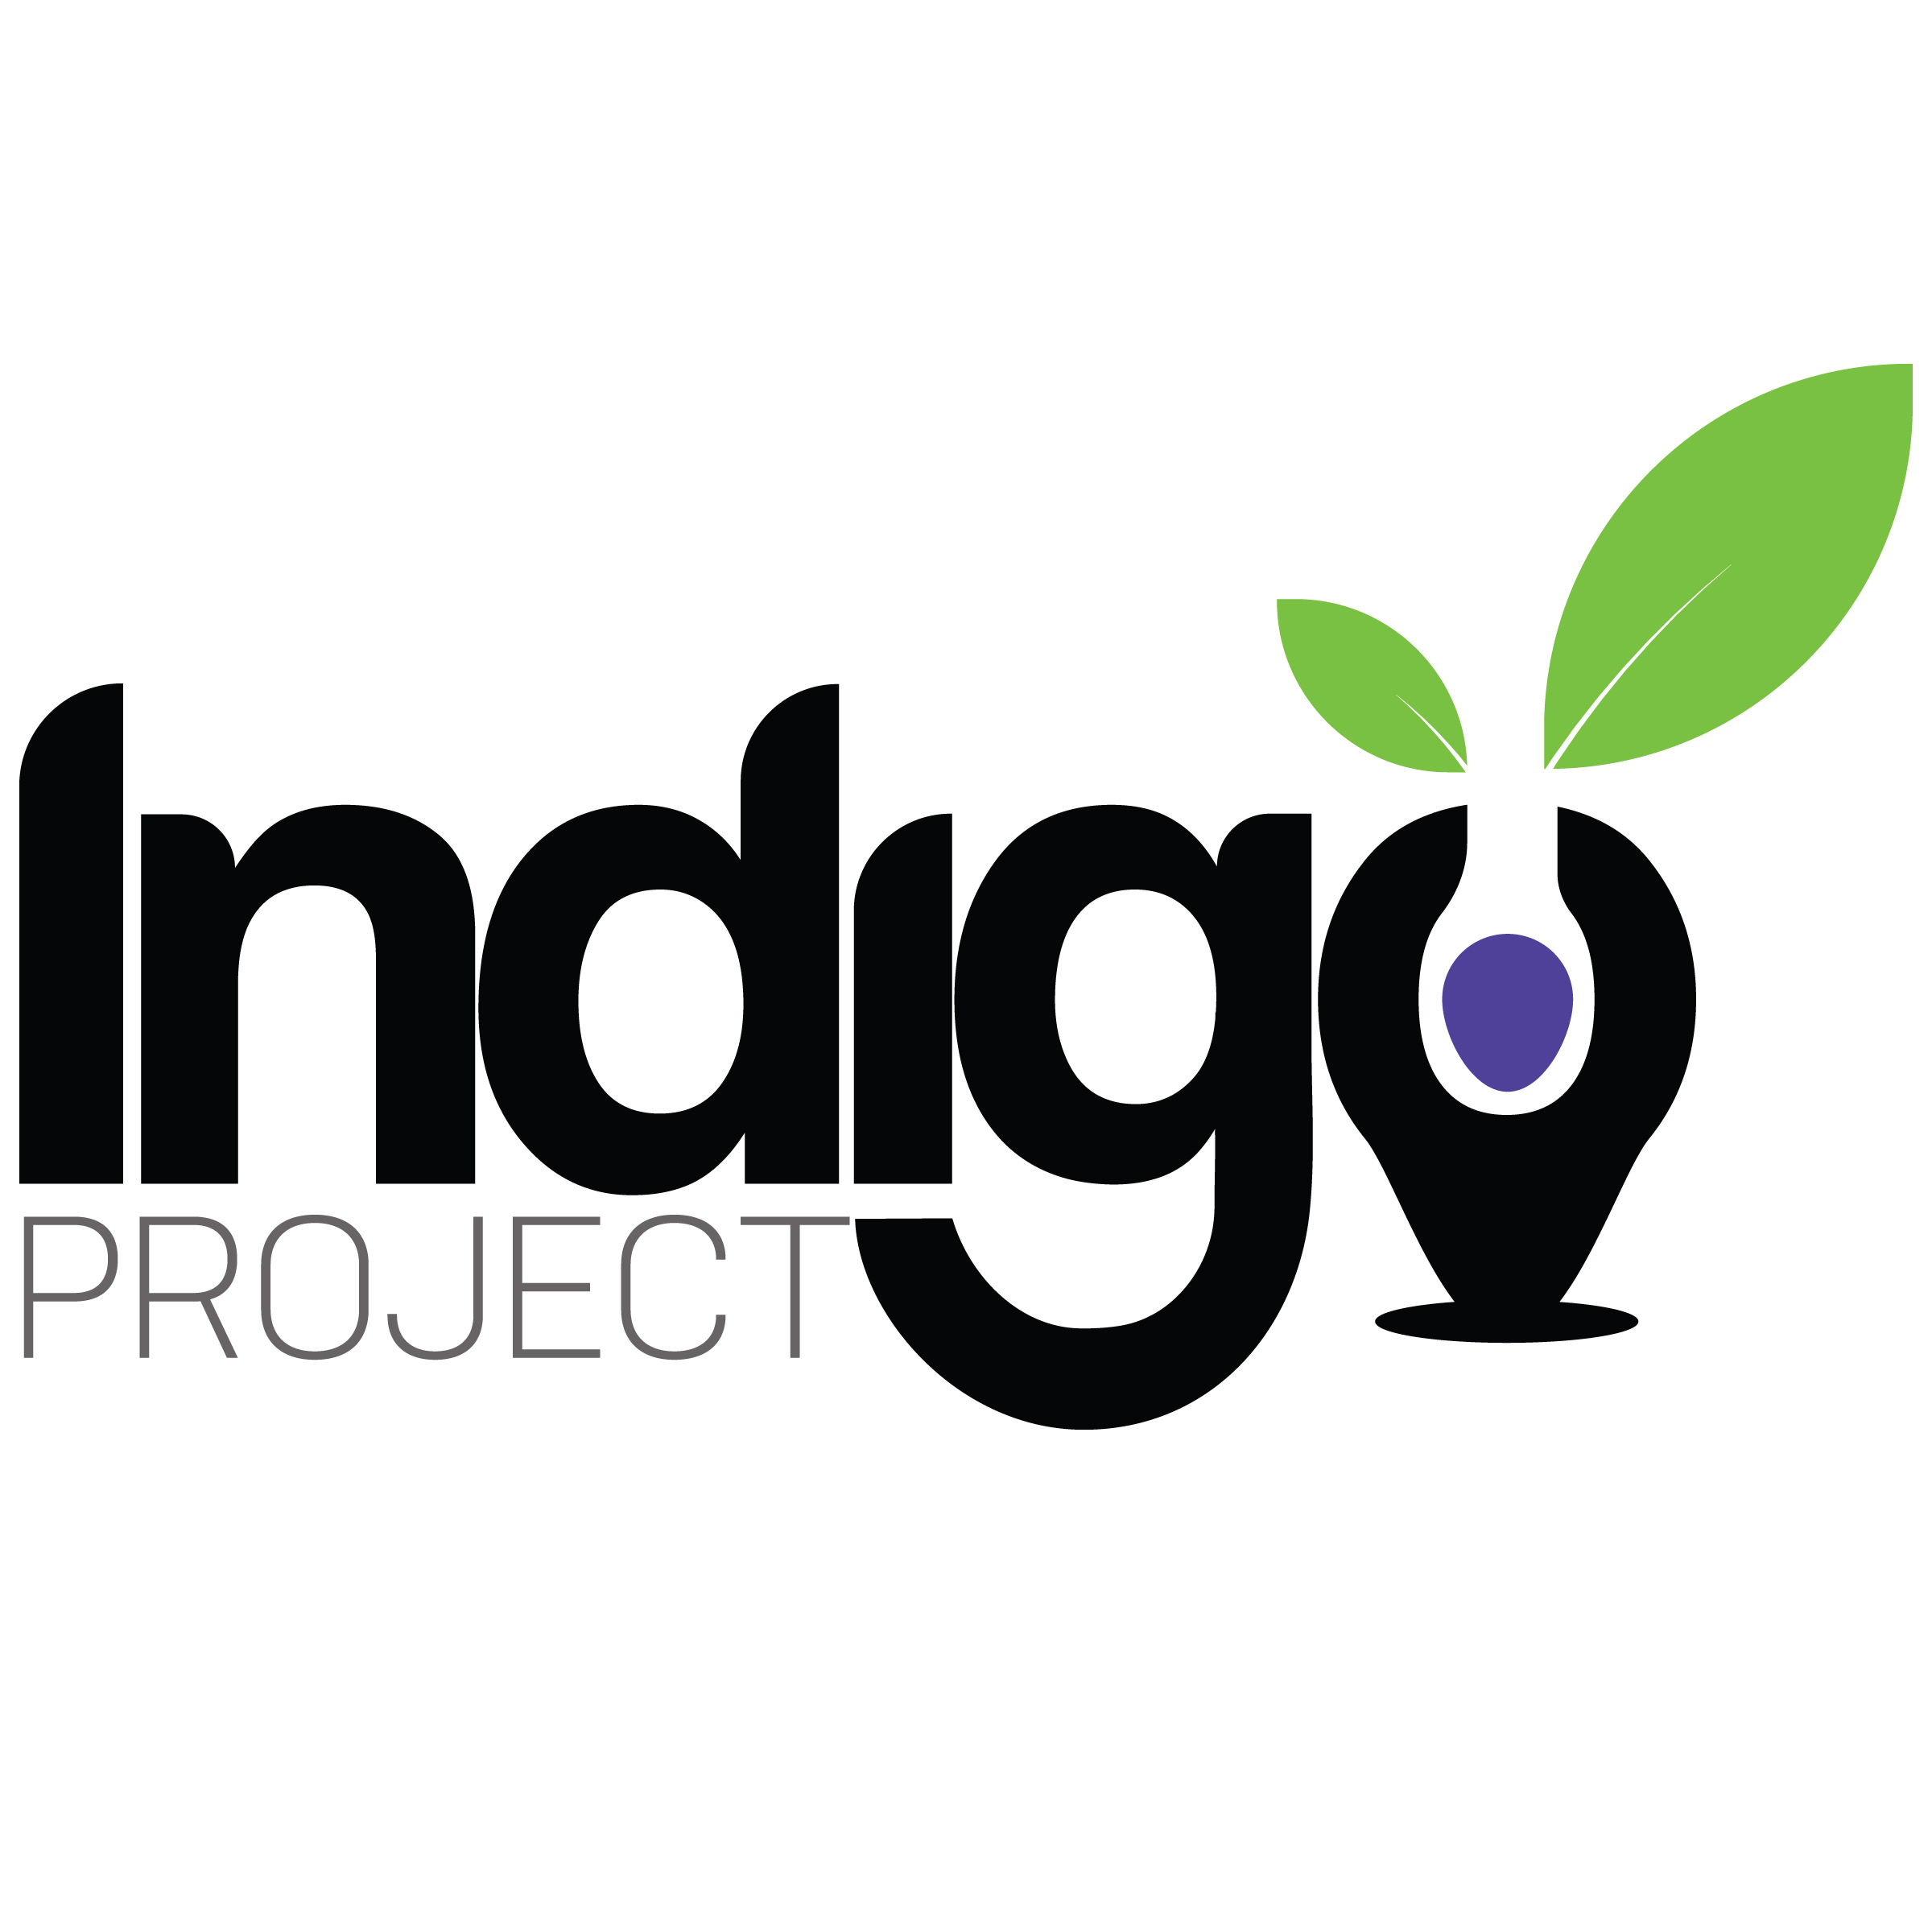 IndigoProject no tag sm.jpg